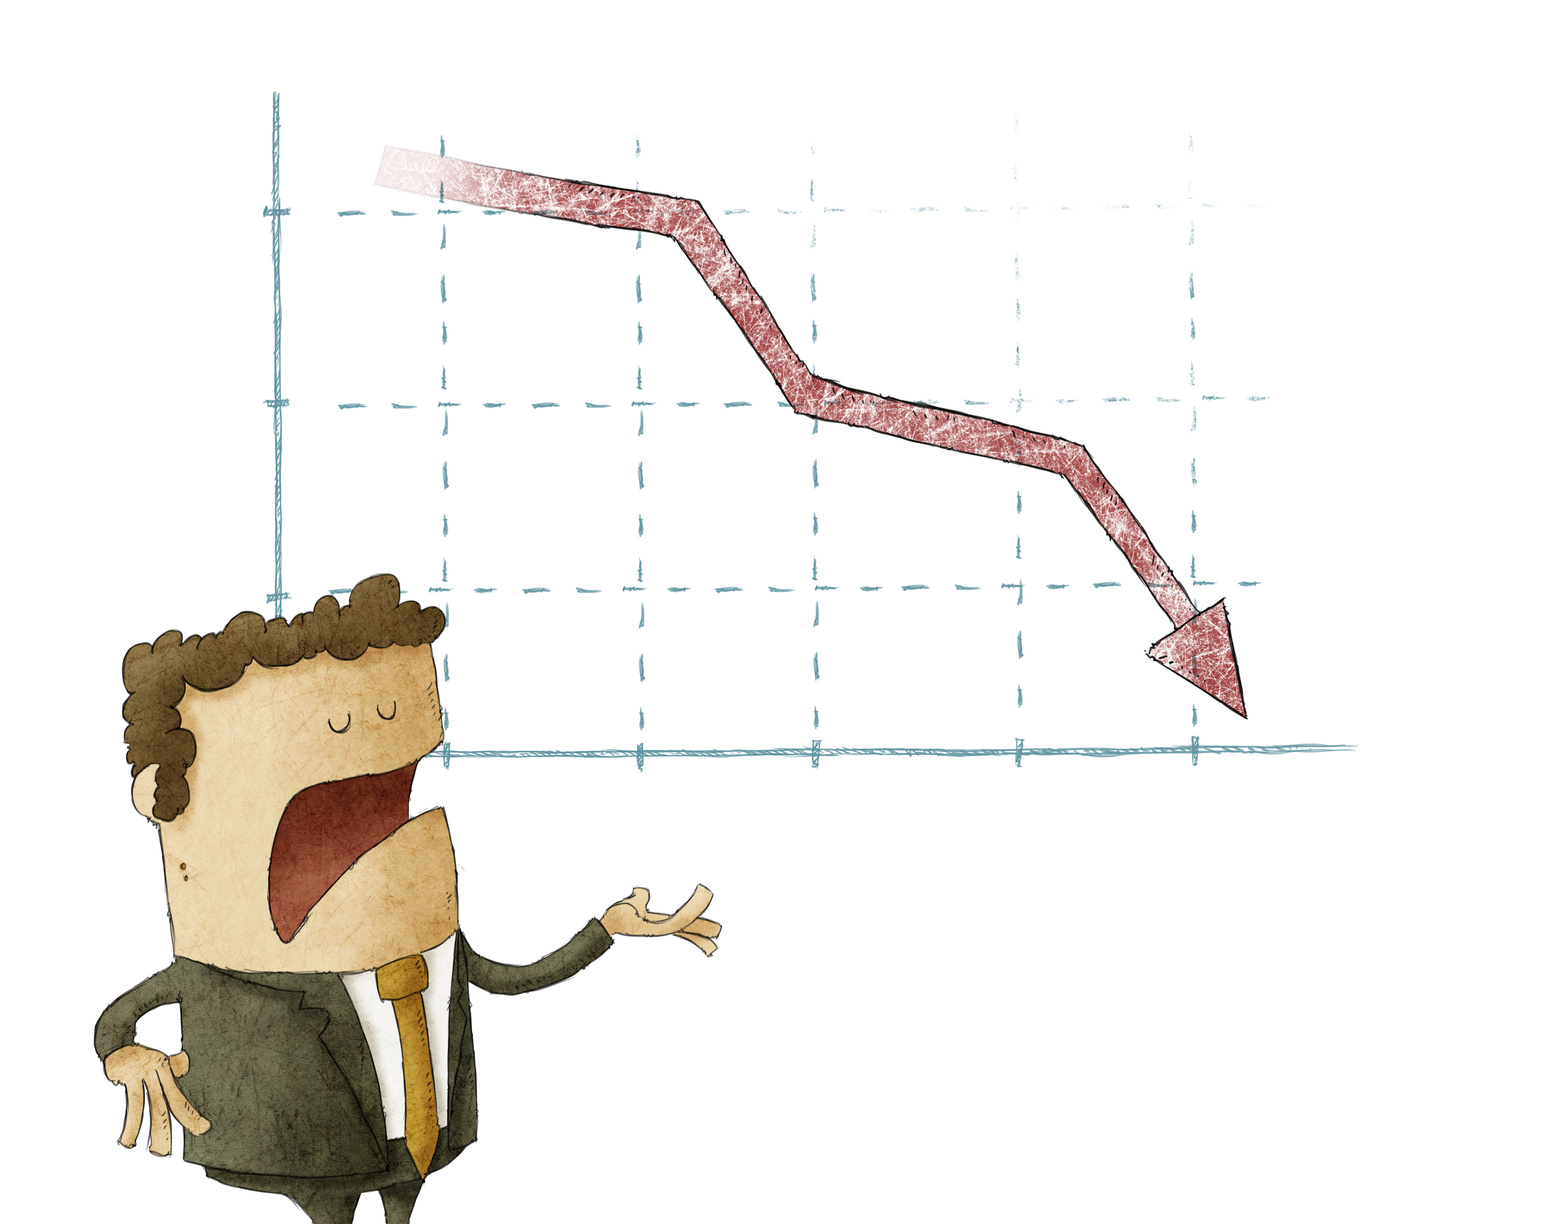 Businessman standing in front of a declining chart over isolated background